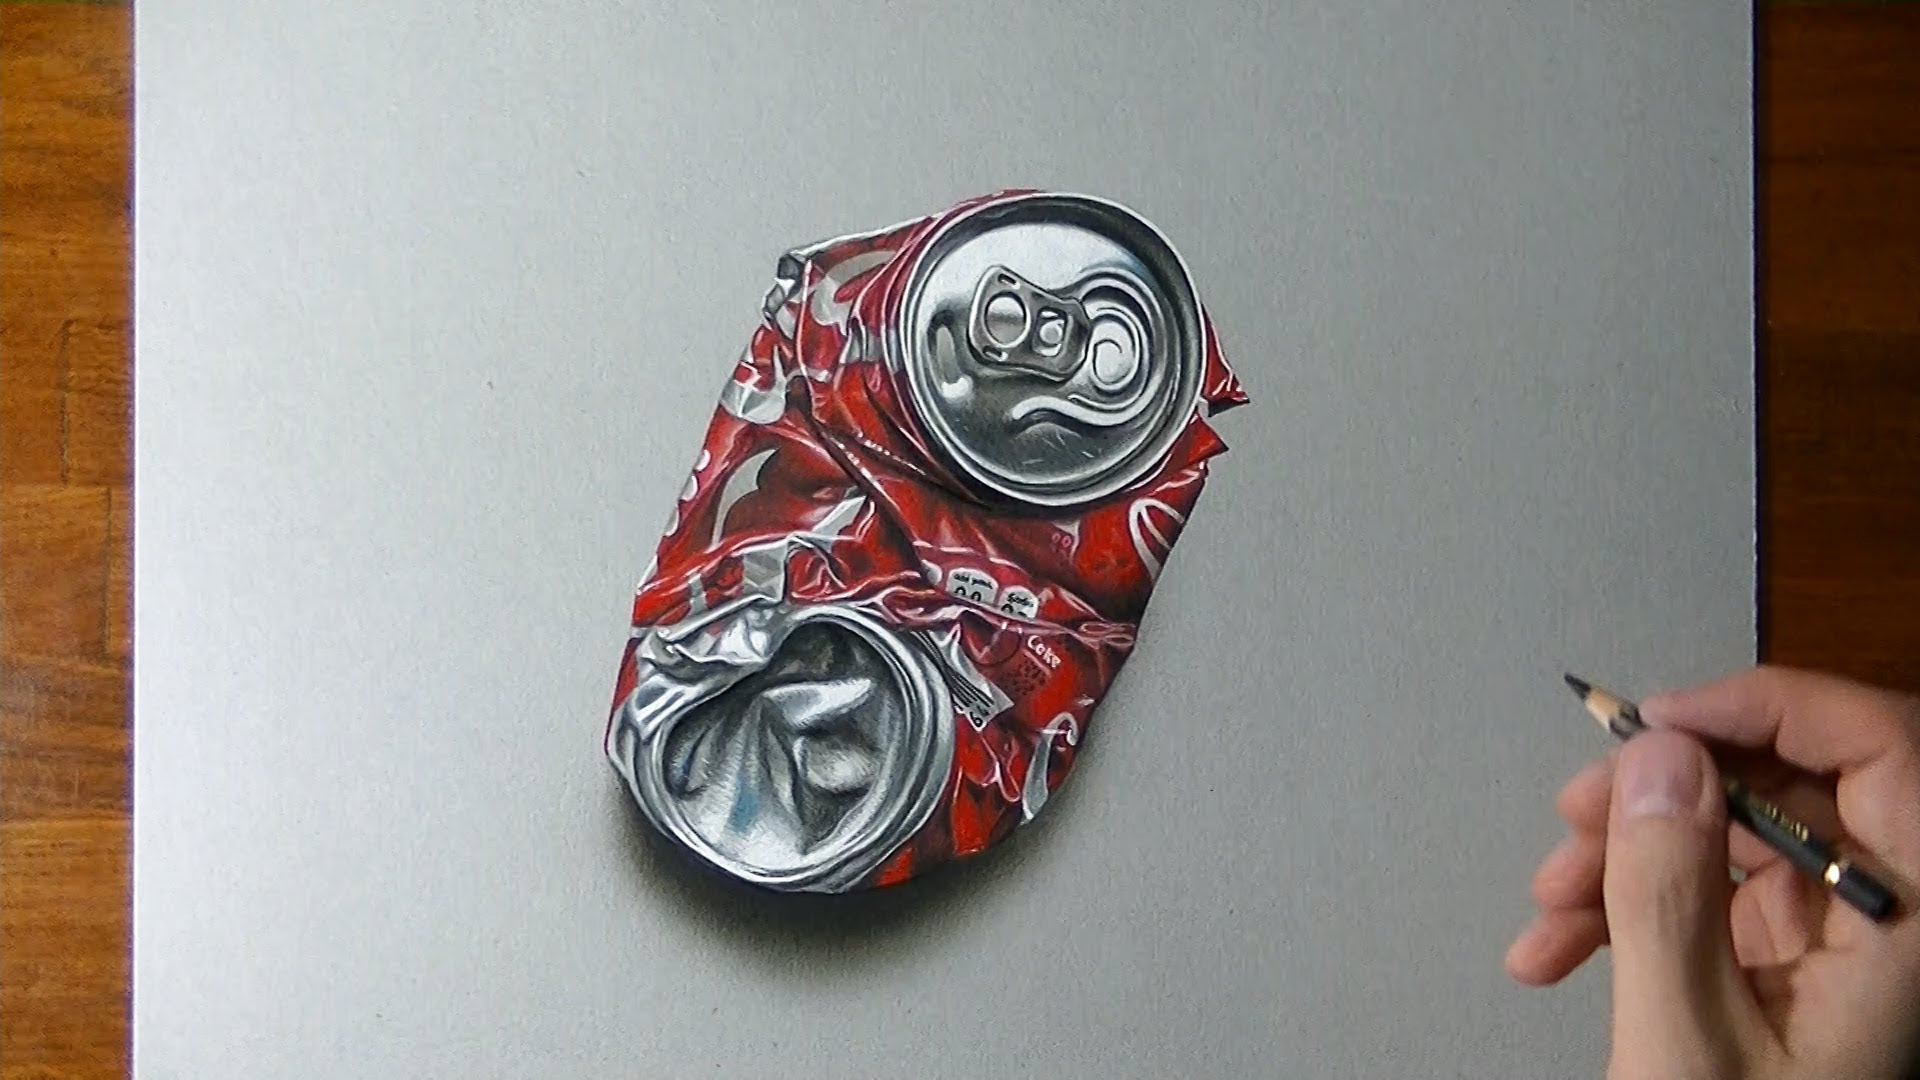 1920x1080 How To Draw A Crushed Coca Cola Can